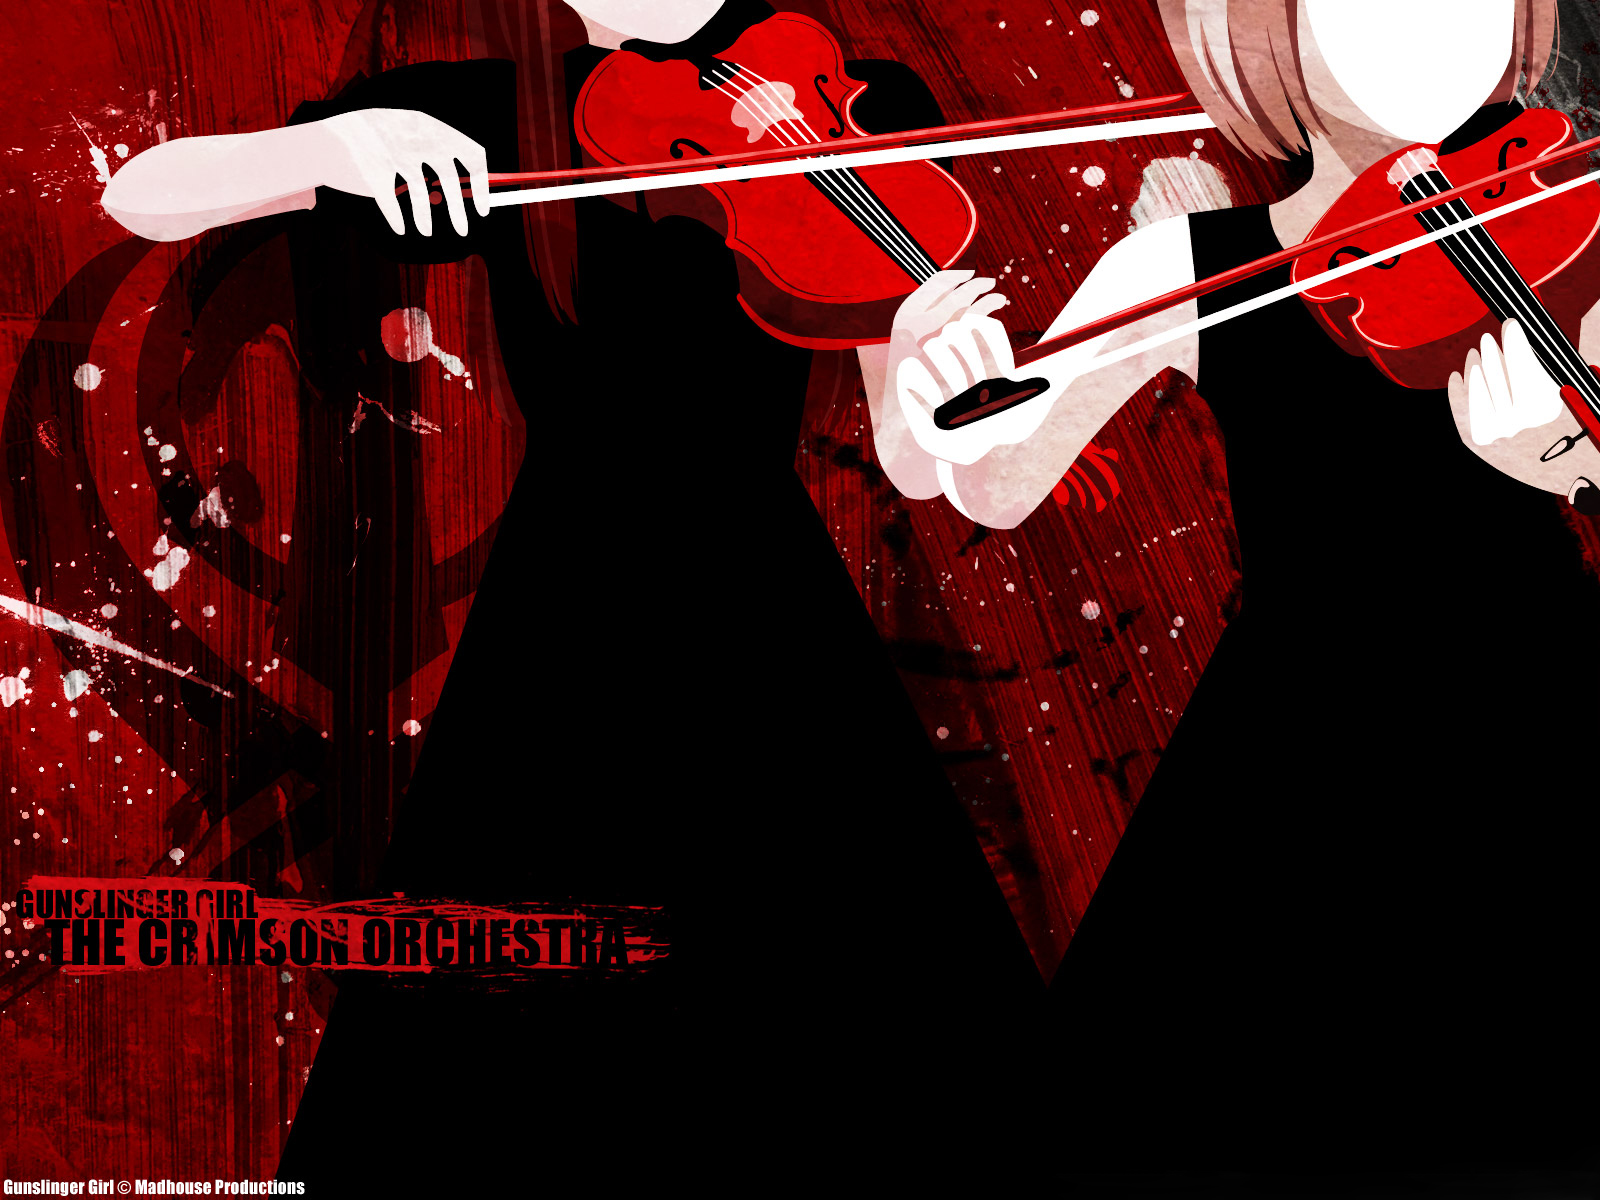 3d обои Gunslinger Girl The Crimson Orchestra (Gunslinger Girl © Madhouse Productions)  дети # 33954